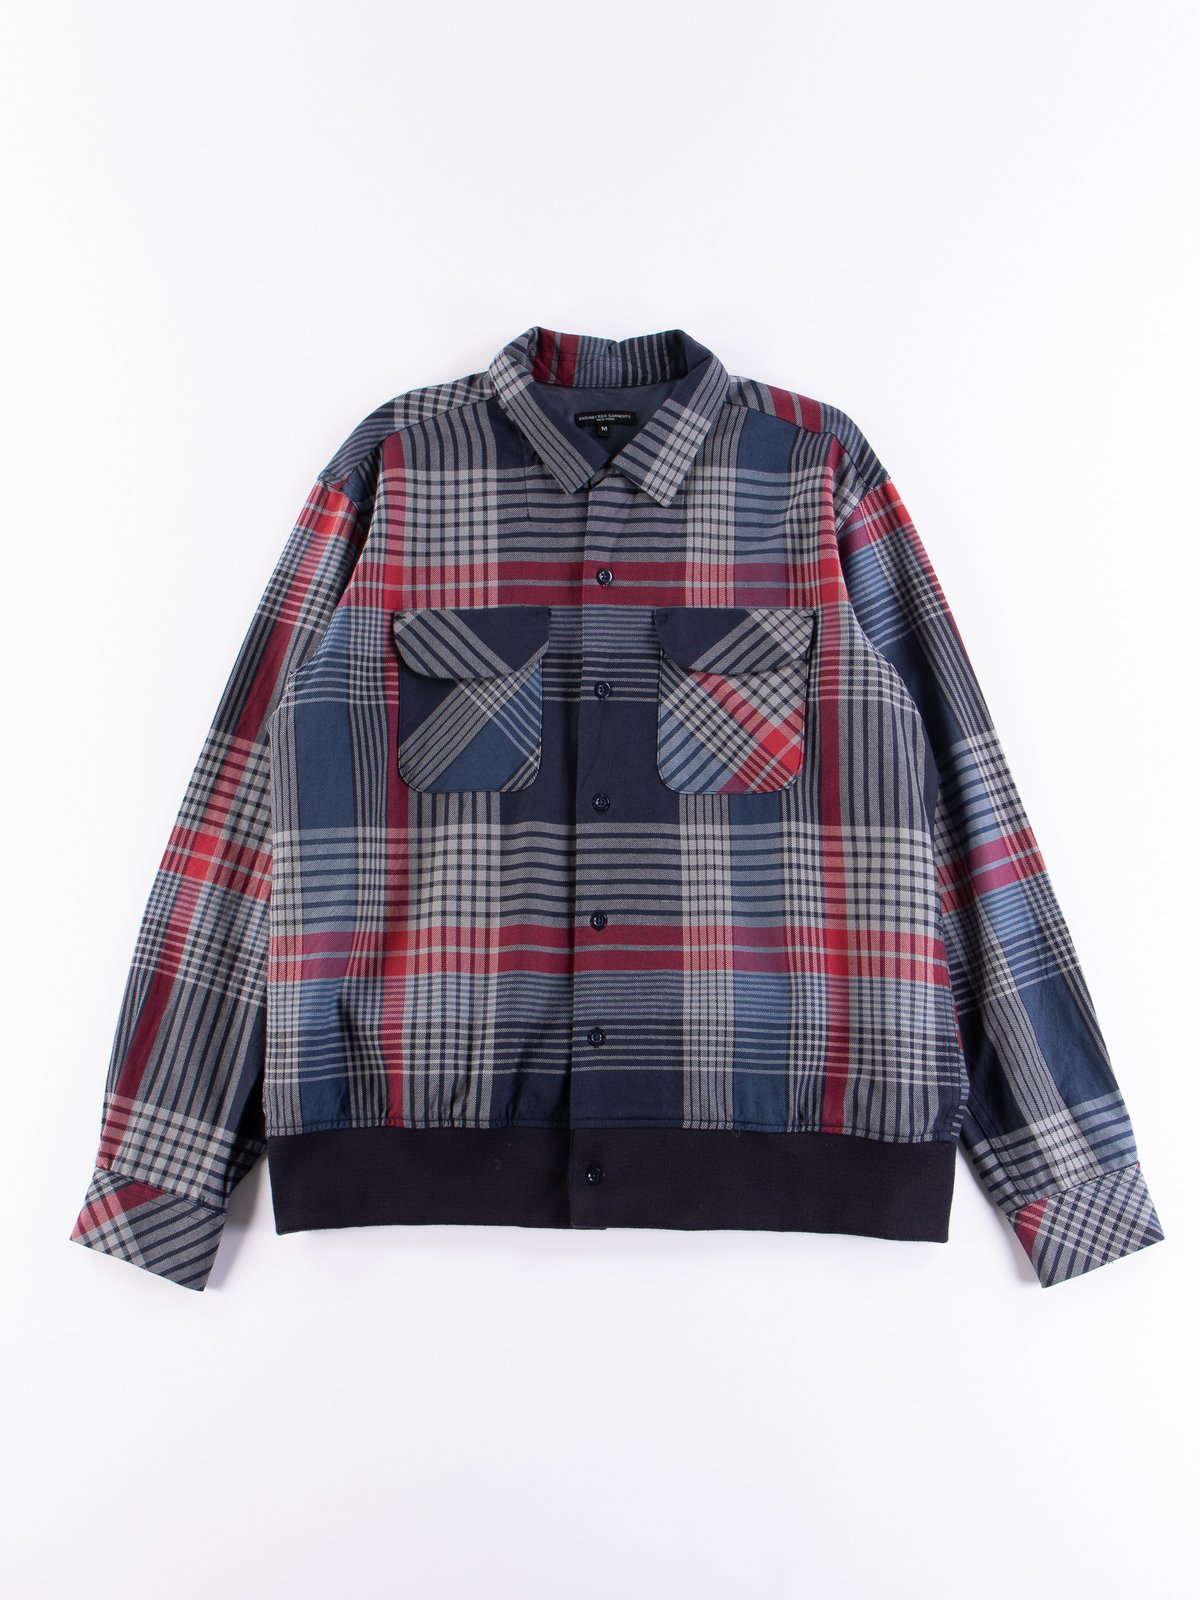 Navy/Grey/Red Cotton Twill Classic Shirt - Image 1